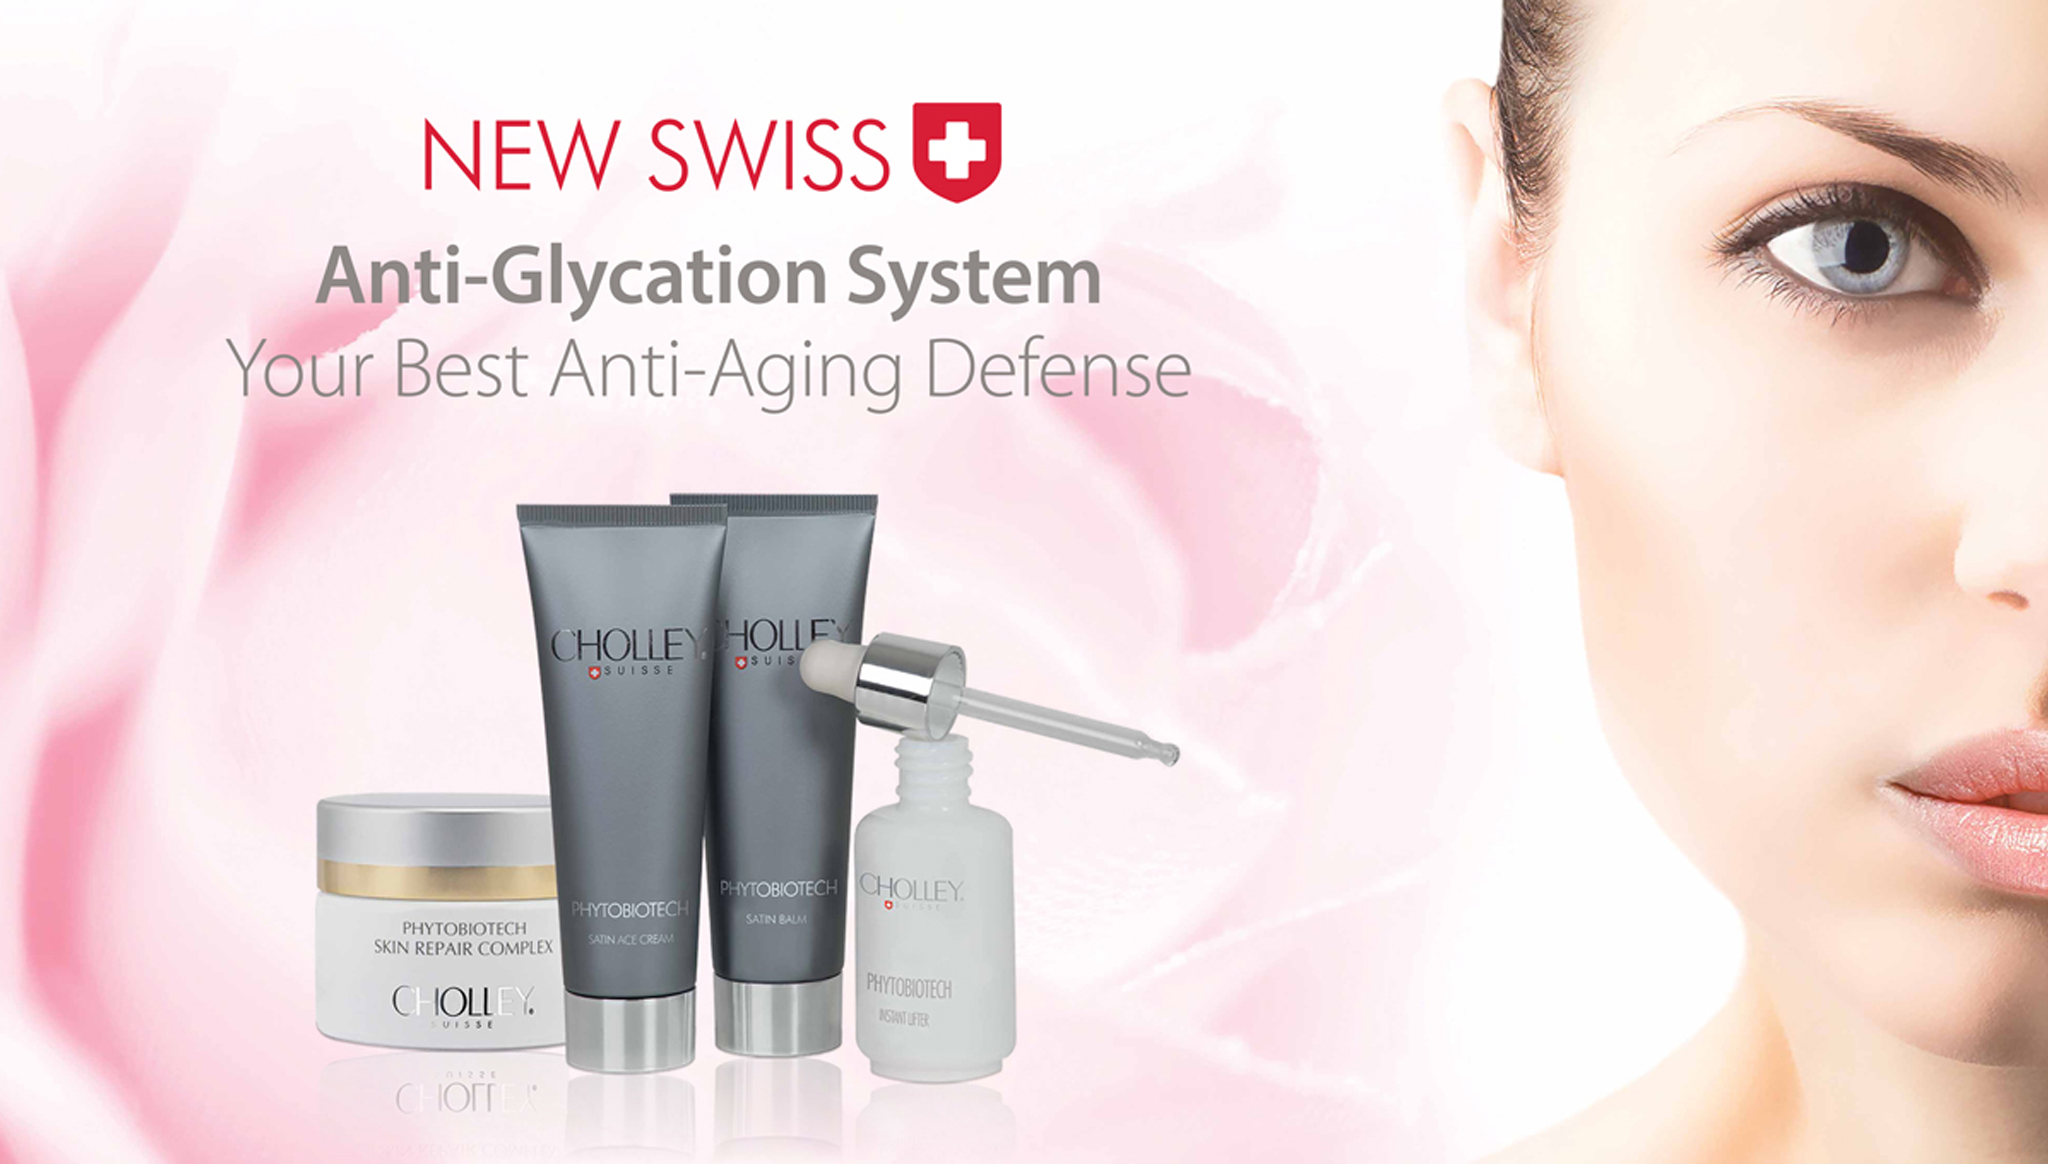 New_Anti-Aging_Phytobiotech